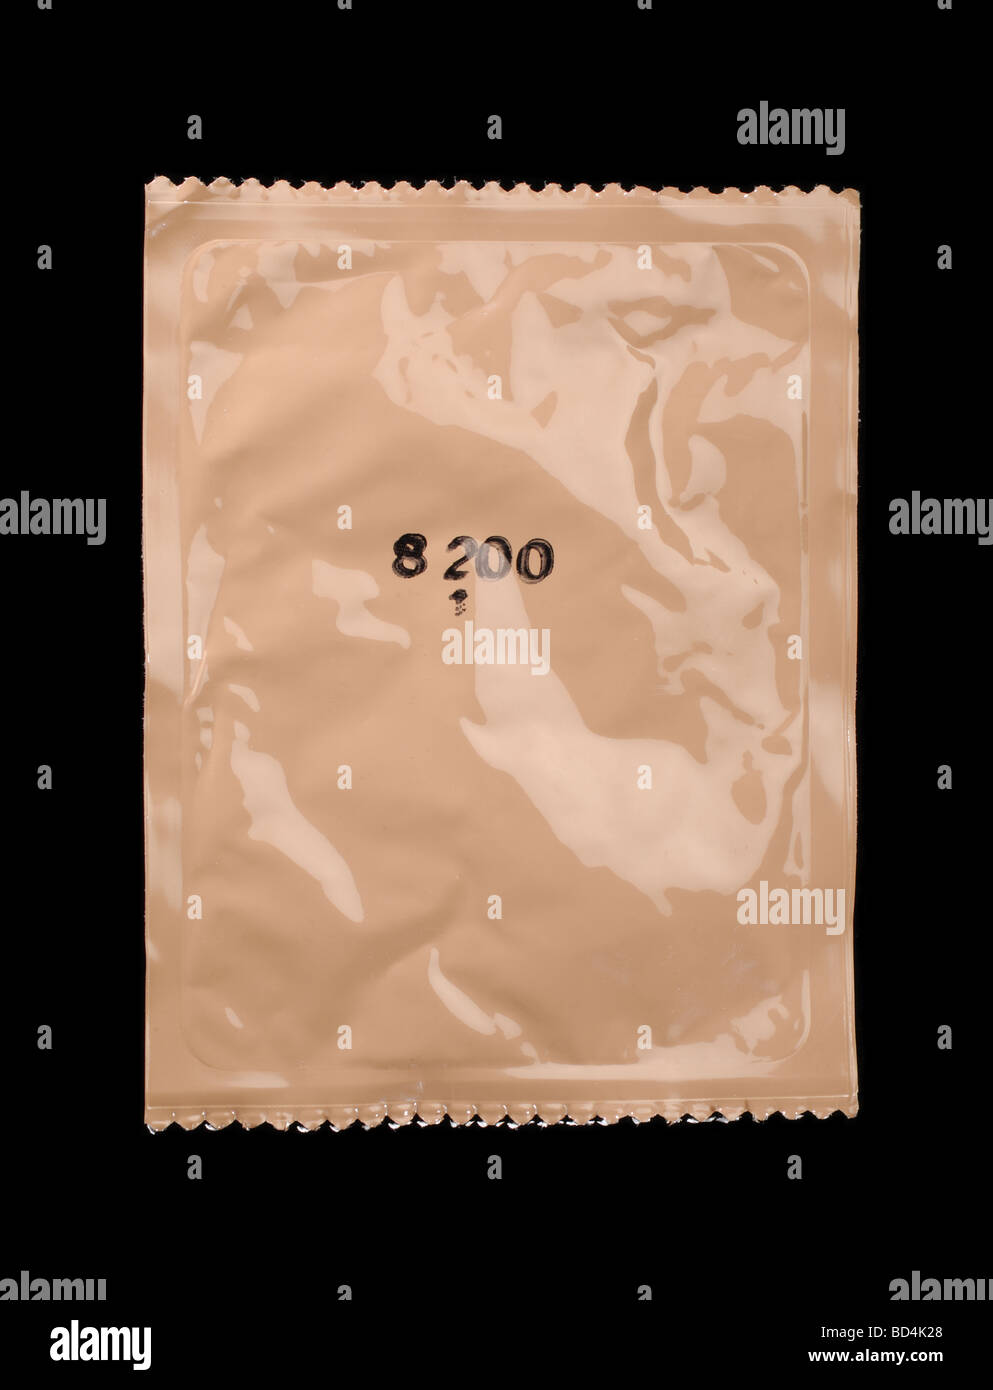 Récipient en plastique brun de rations alimentaires militaires Photo Stock